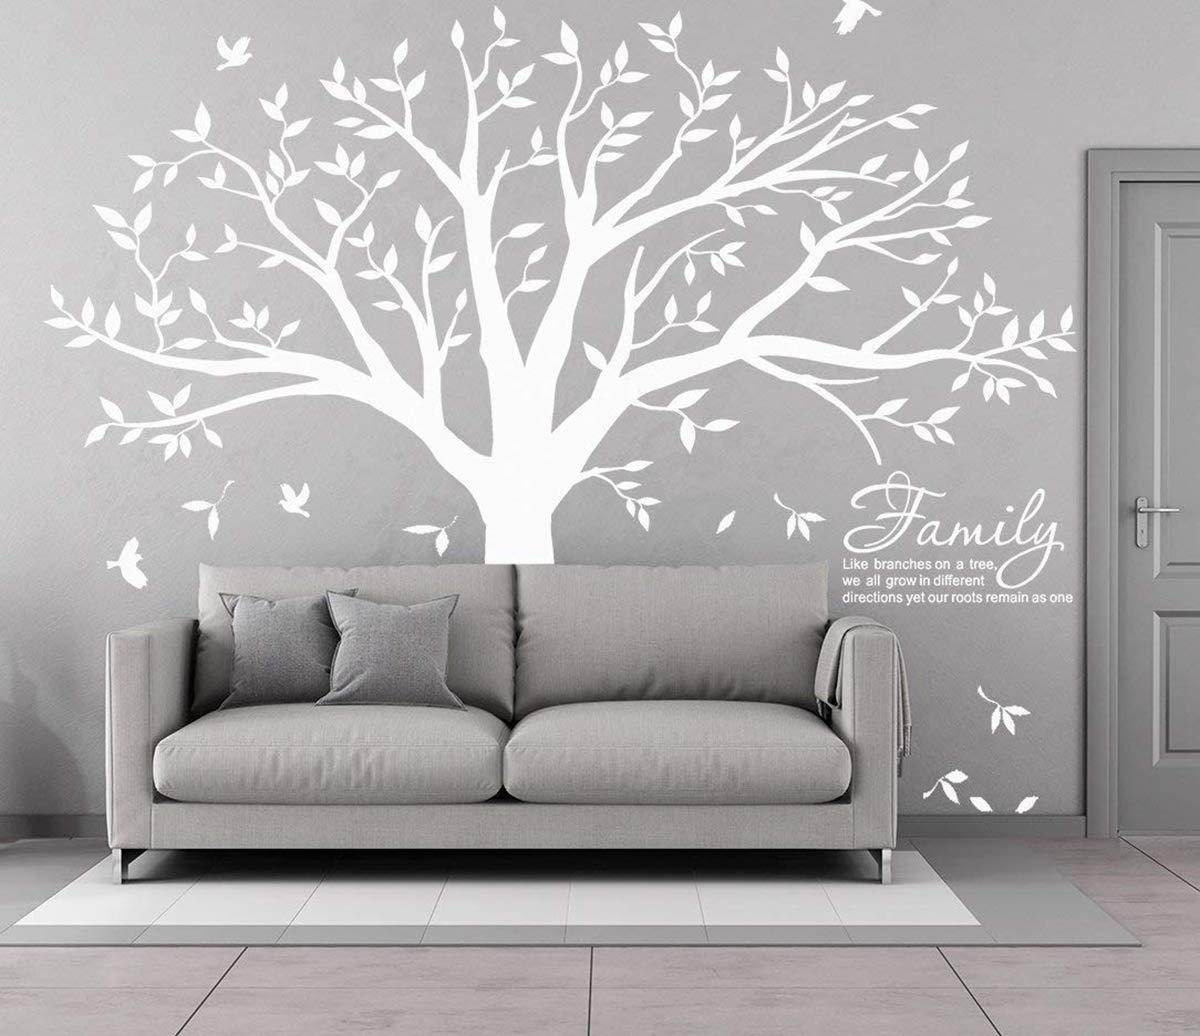 MAFENT Family Tree Wall Decal Quote- Family Like Branches On A Tree Lettering Tree Wall Sticker for Bedroom Decoration (White)